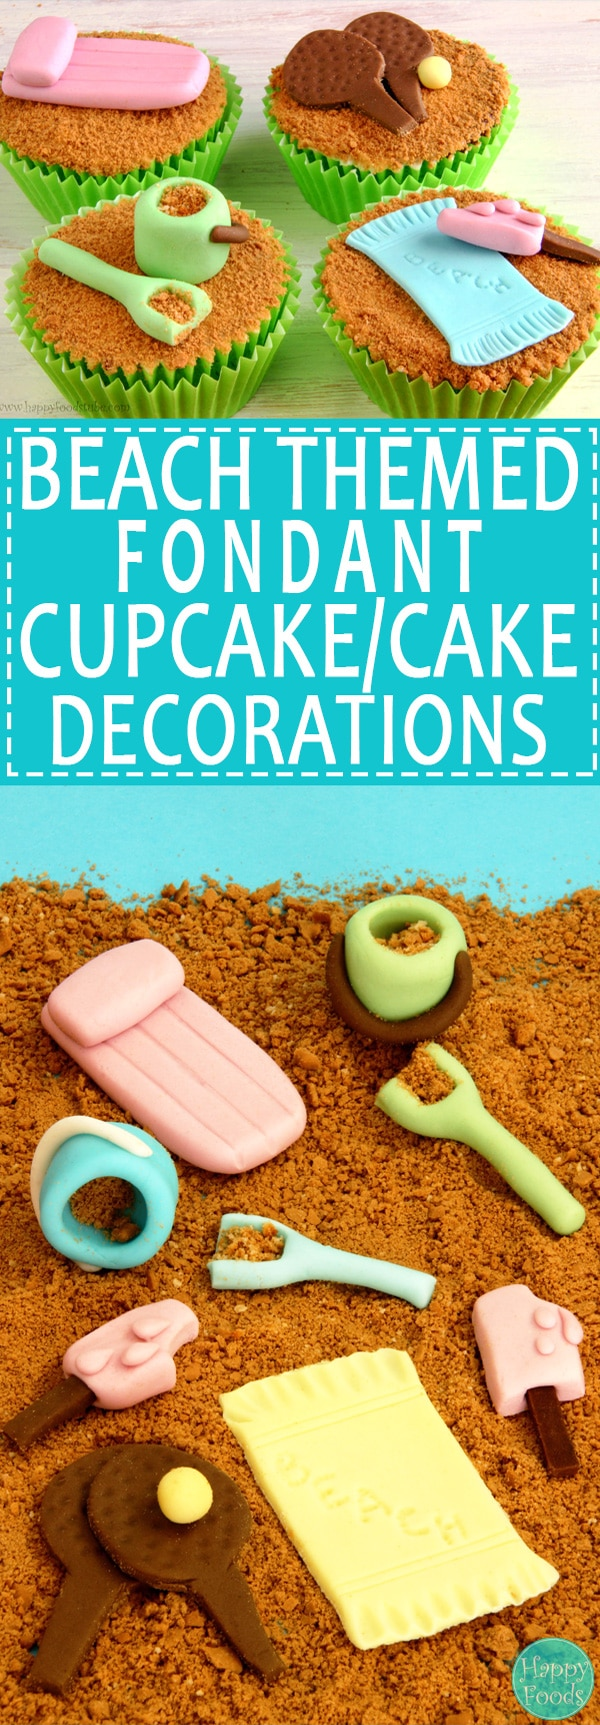 Beach Themed Fondant Cupcake/Cake Decorations - Easy cake decorating tutorial. | happyfoodstube.com